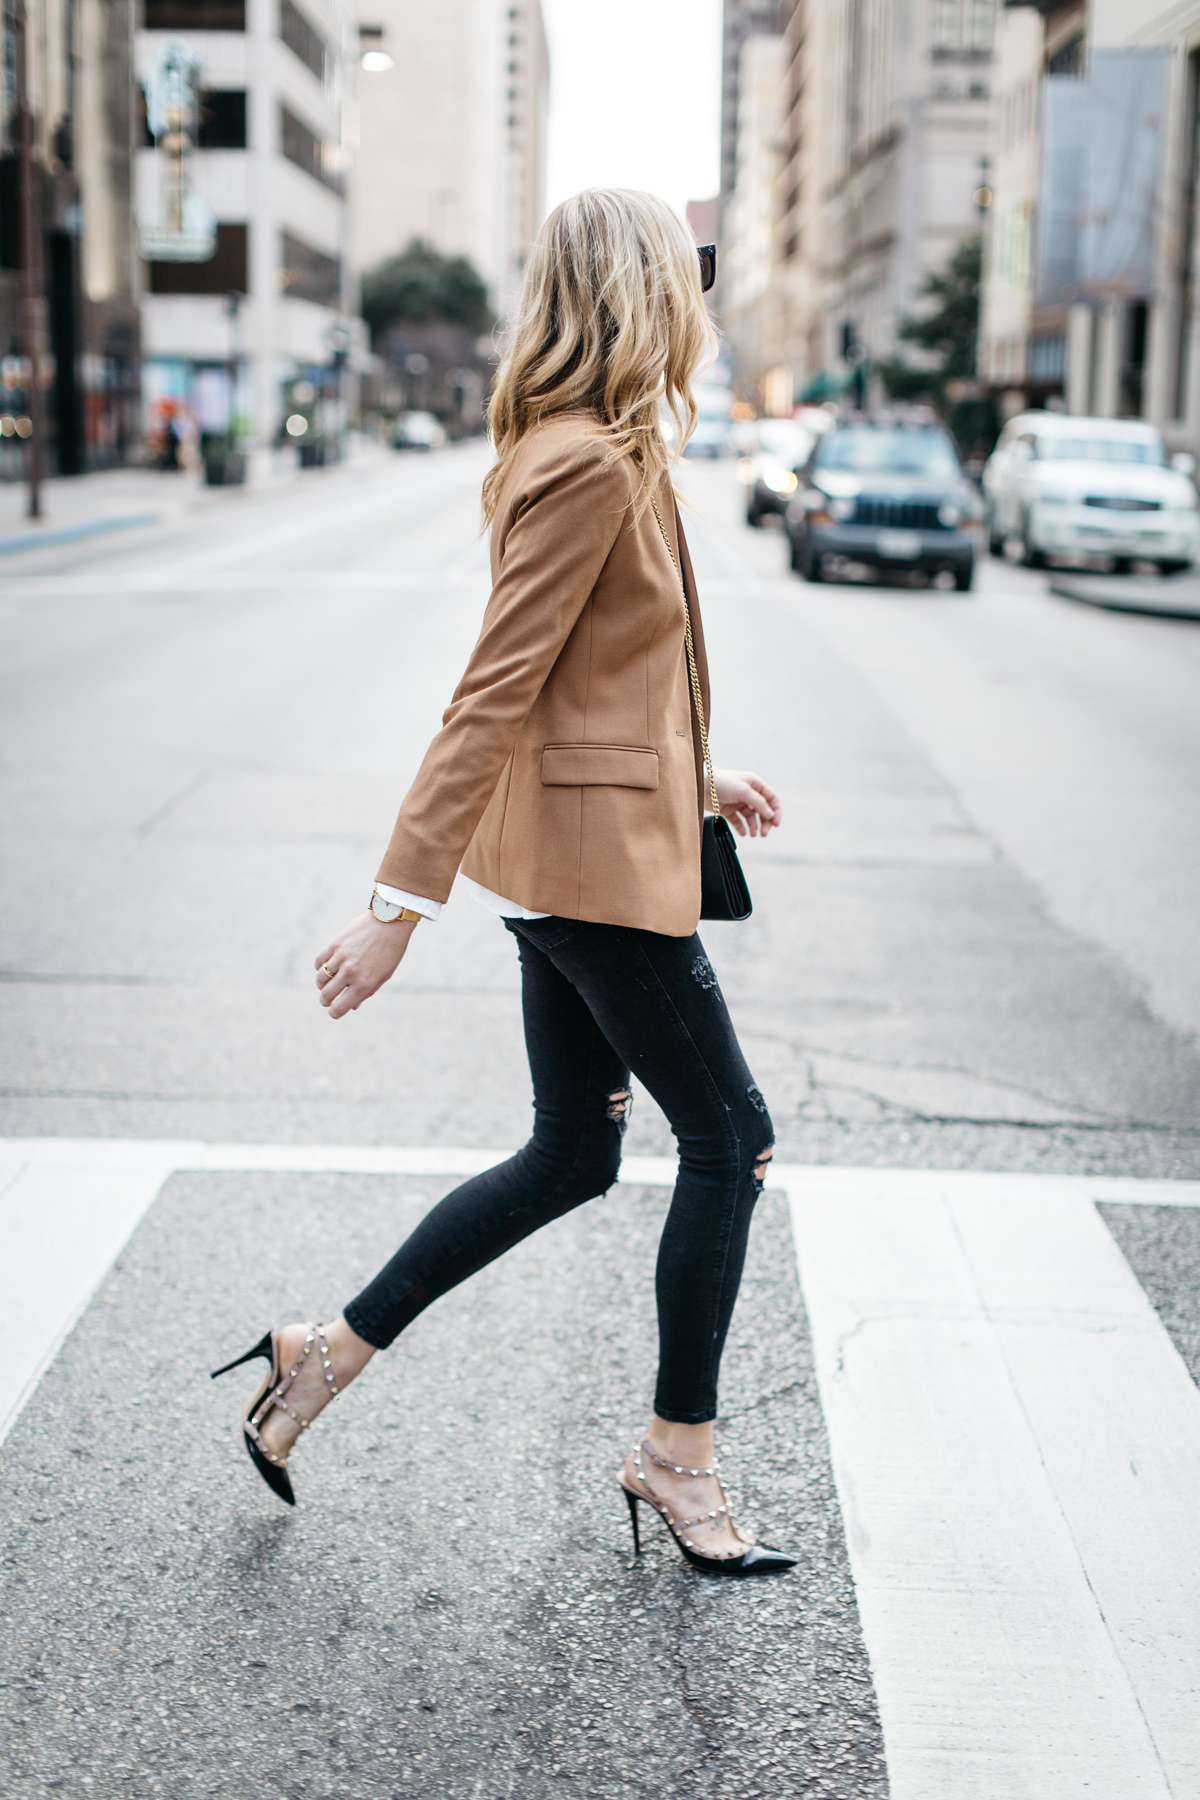 Fall Outfit, Winter Outfit, White Button-Down Shirt, Camel Blazer, Gucci Marmont Handbag, Black Ripped Skinny Jeans, Valentino Rockstud Pumps